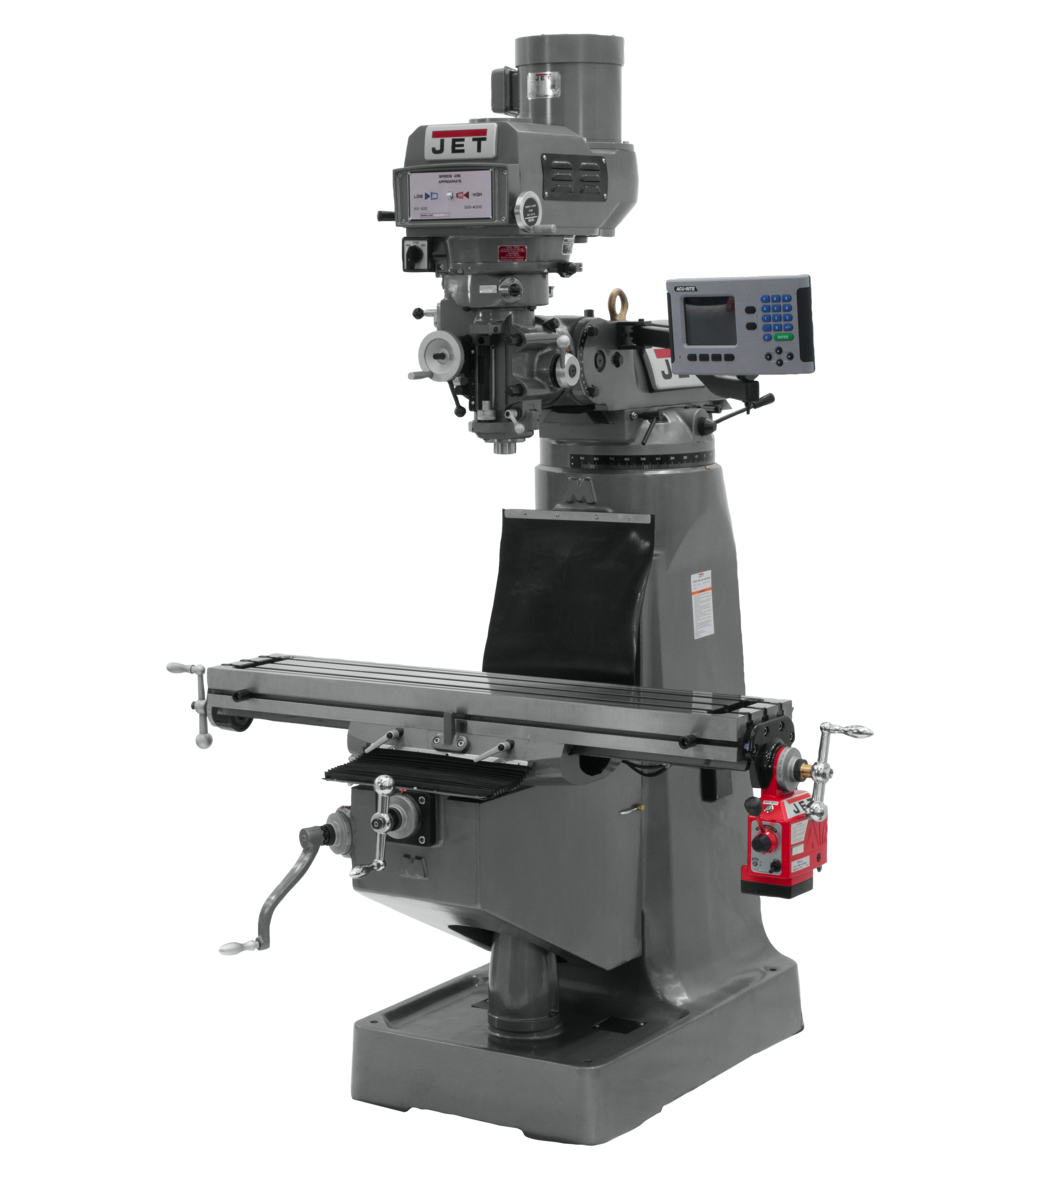 JTM-4VS Mill With ACU-RITE 203 DRO With X-Axis Powerfeed